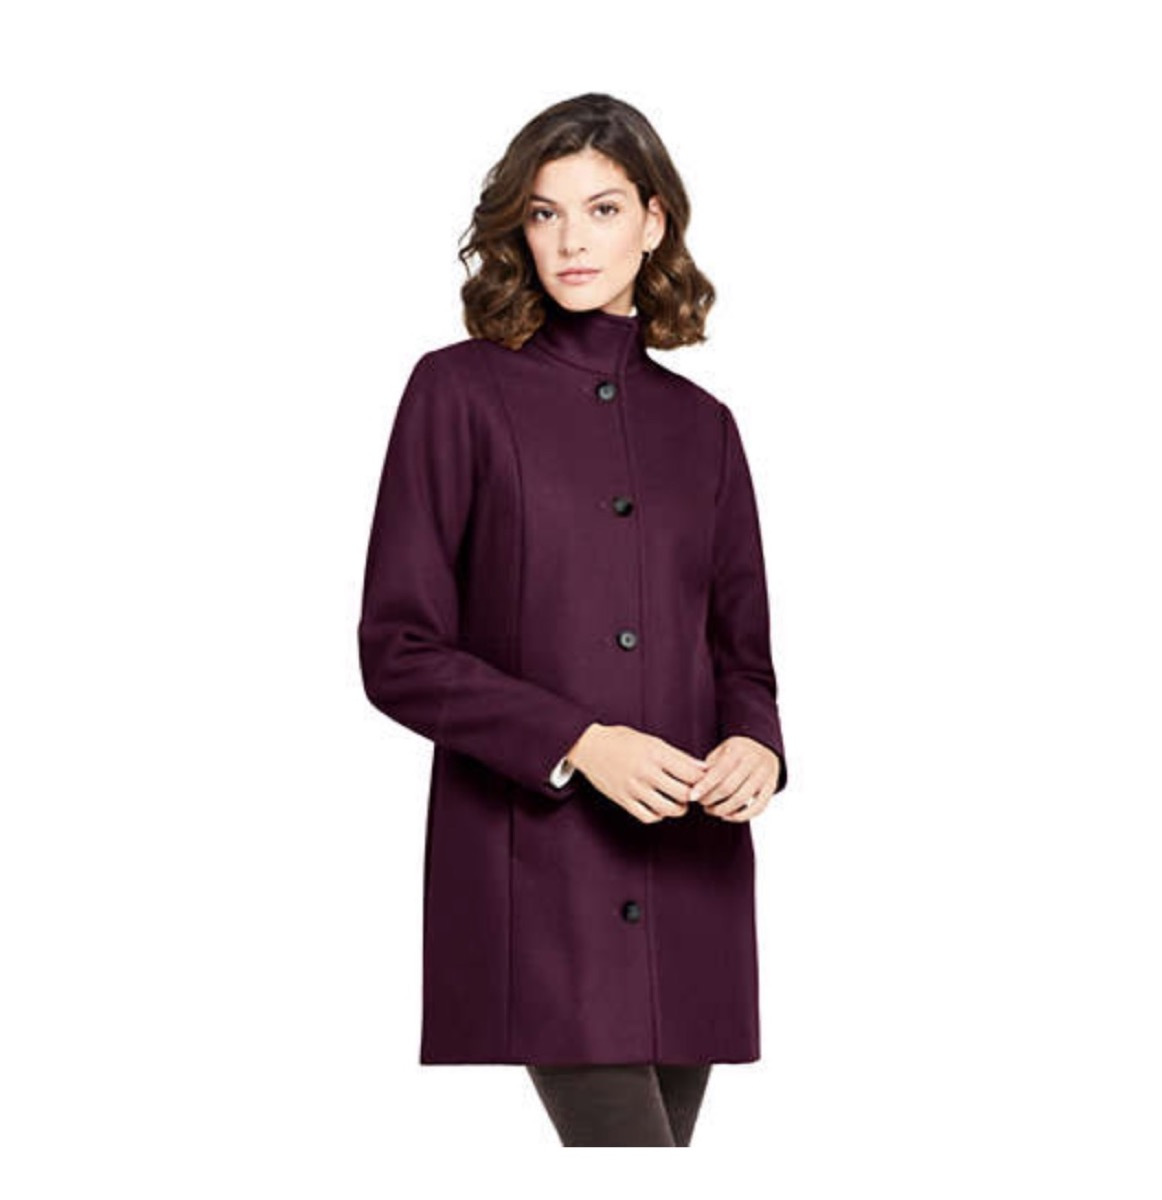 woman with brown hair in purple coat, women's coats for winter